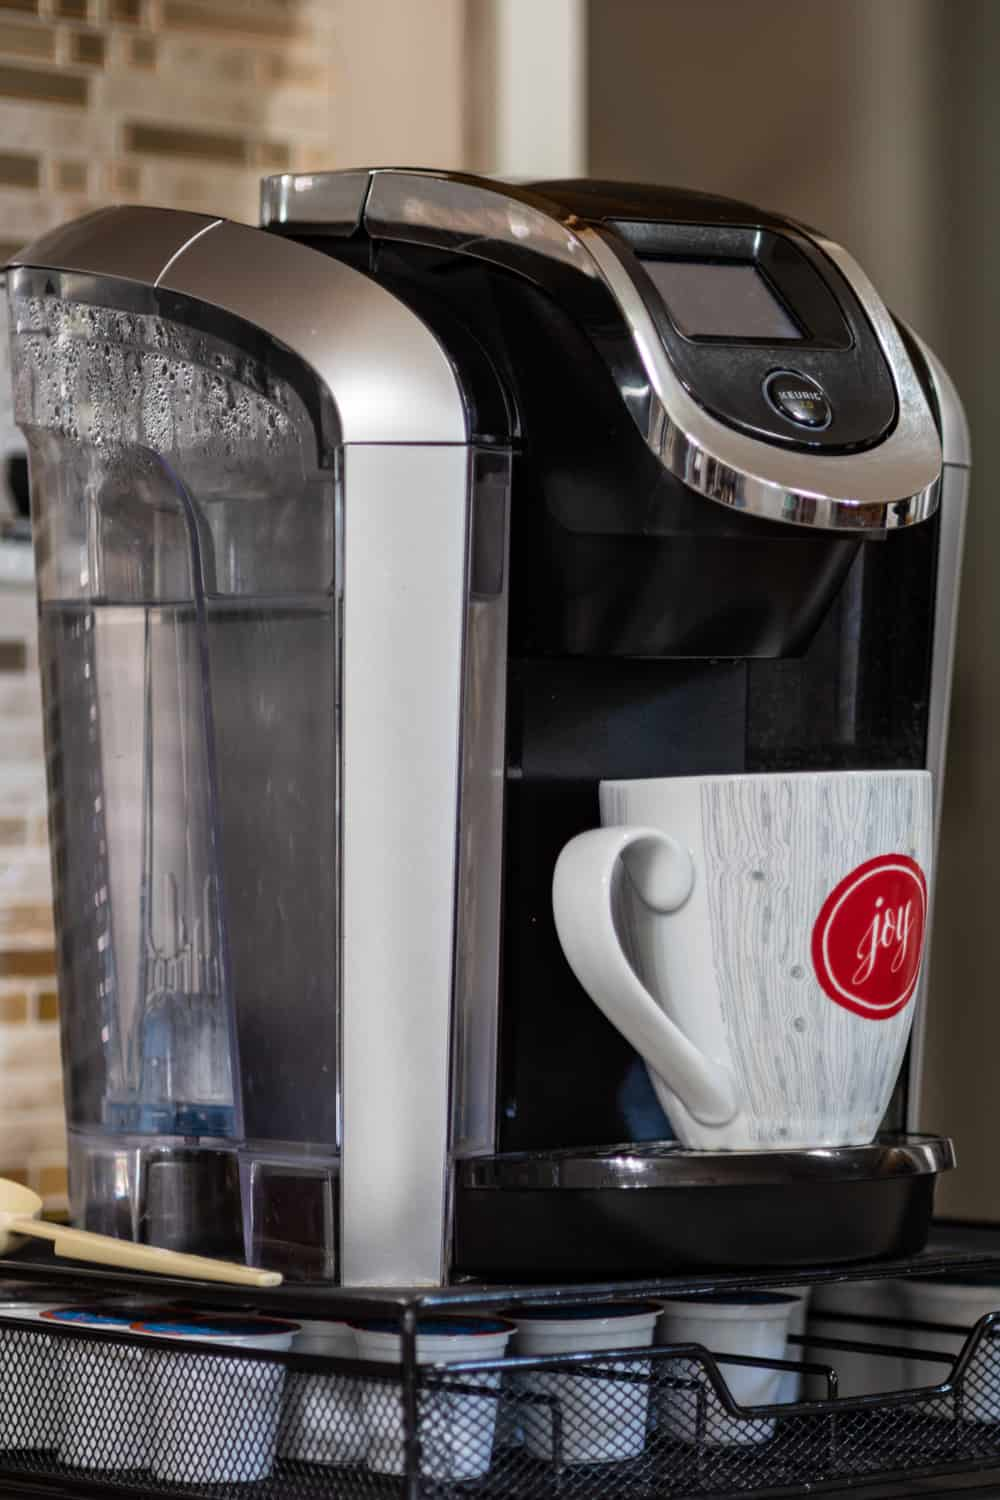 Keurig Coffee Maker Comparison